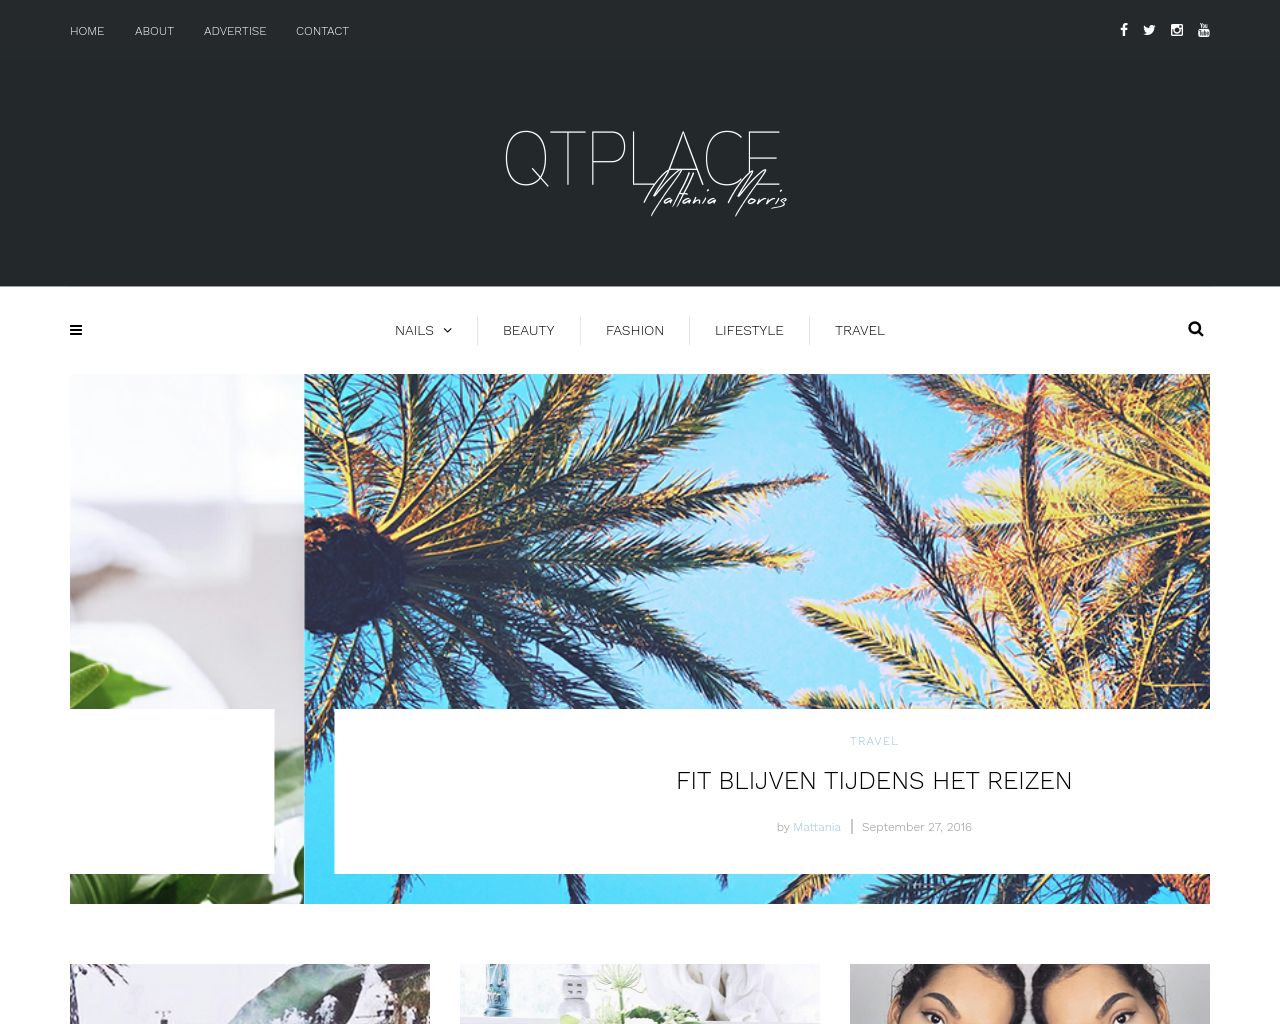 Qtplace-Advertising-Reviews-Pricing